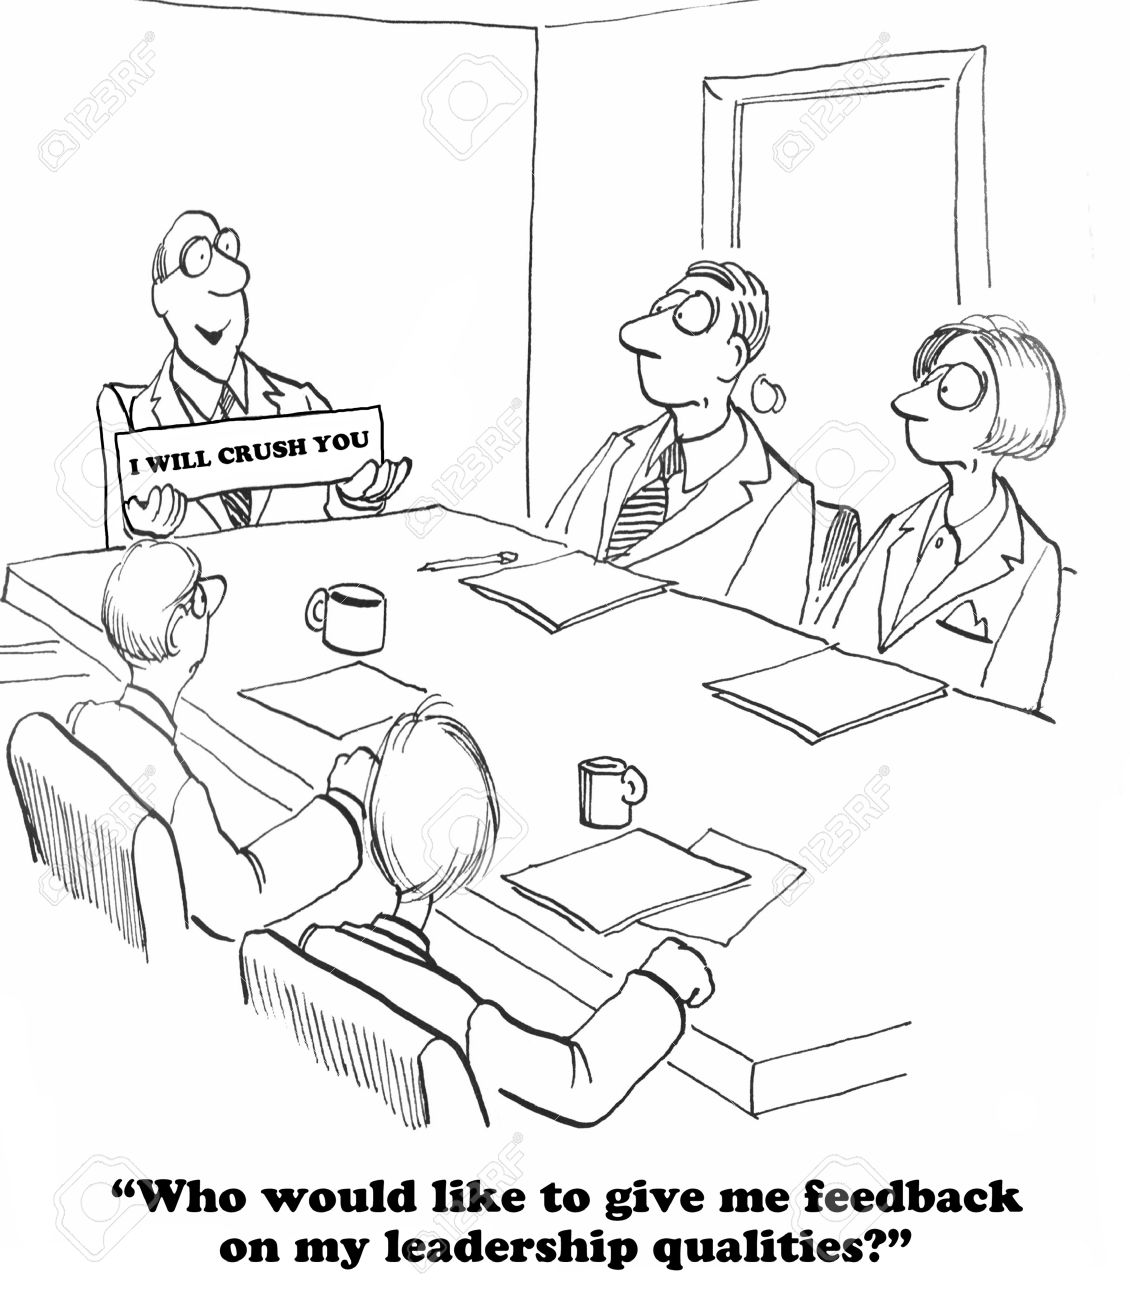 Business cartoon about a leader who does not want feedback. - 57706859